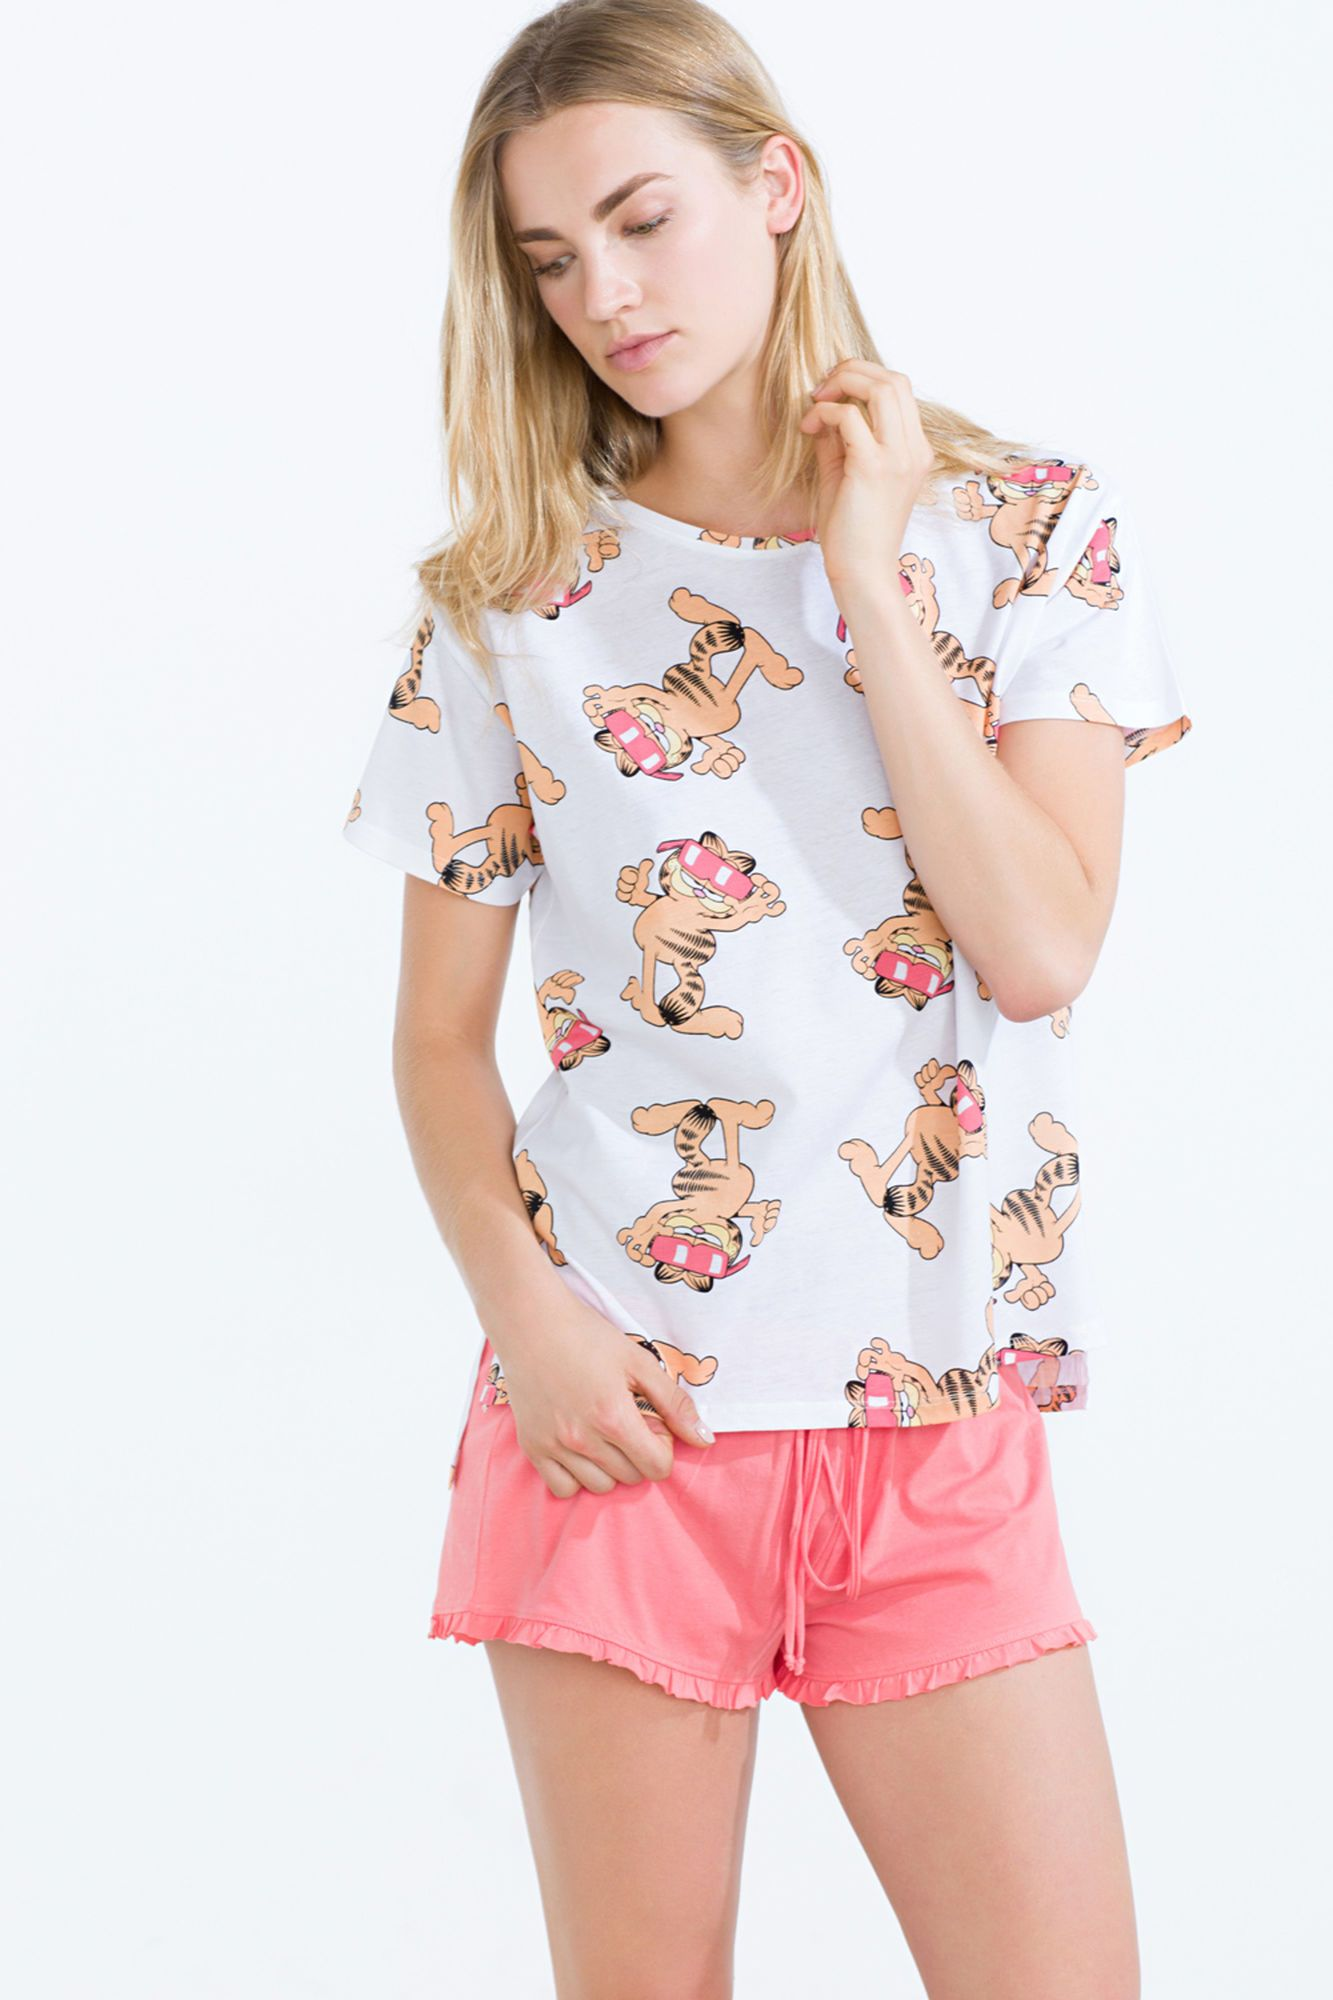 Pijama corto con estampado de Garfield | Pijamas cortos | Women´secret